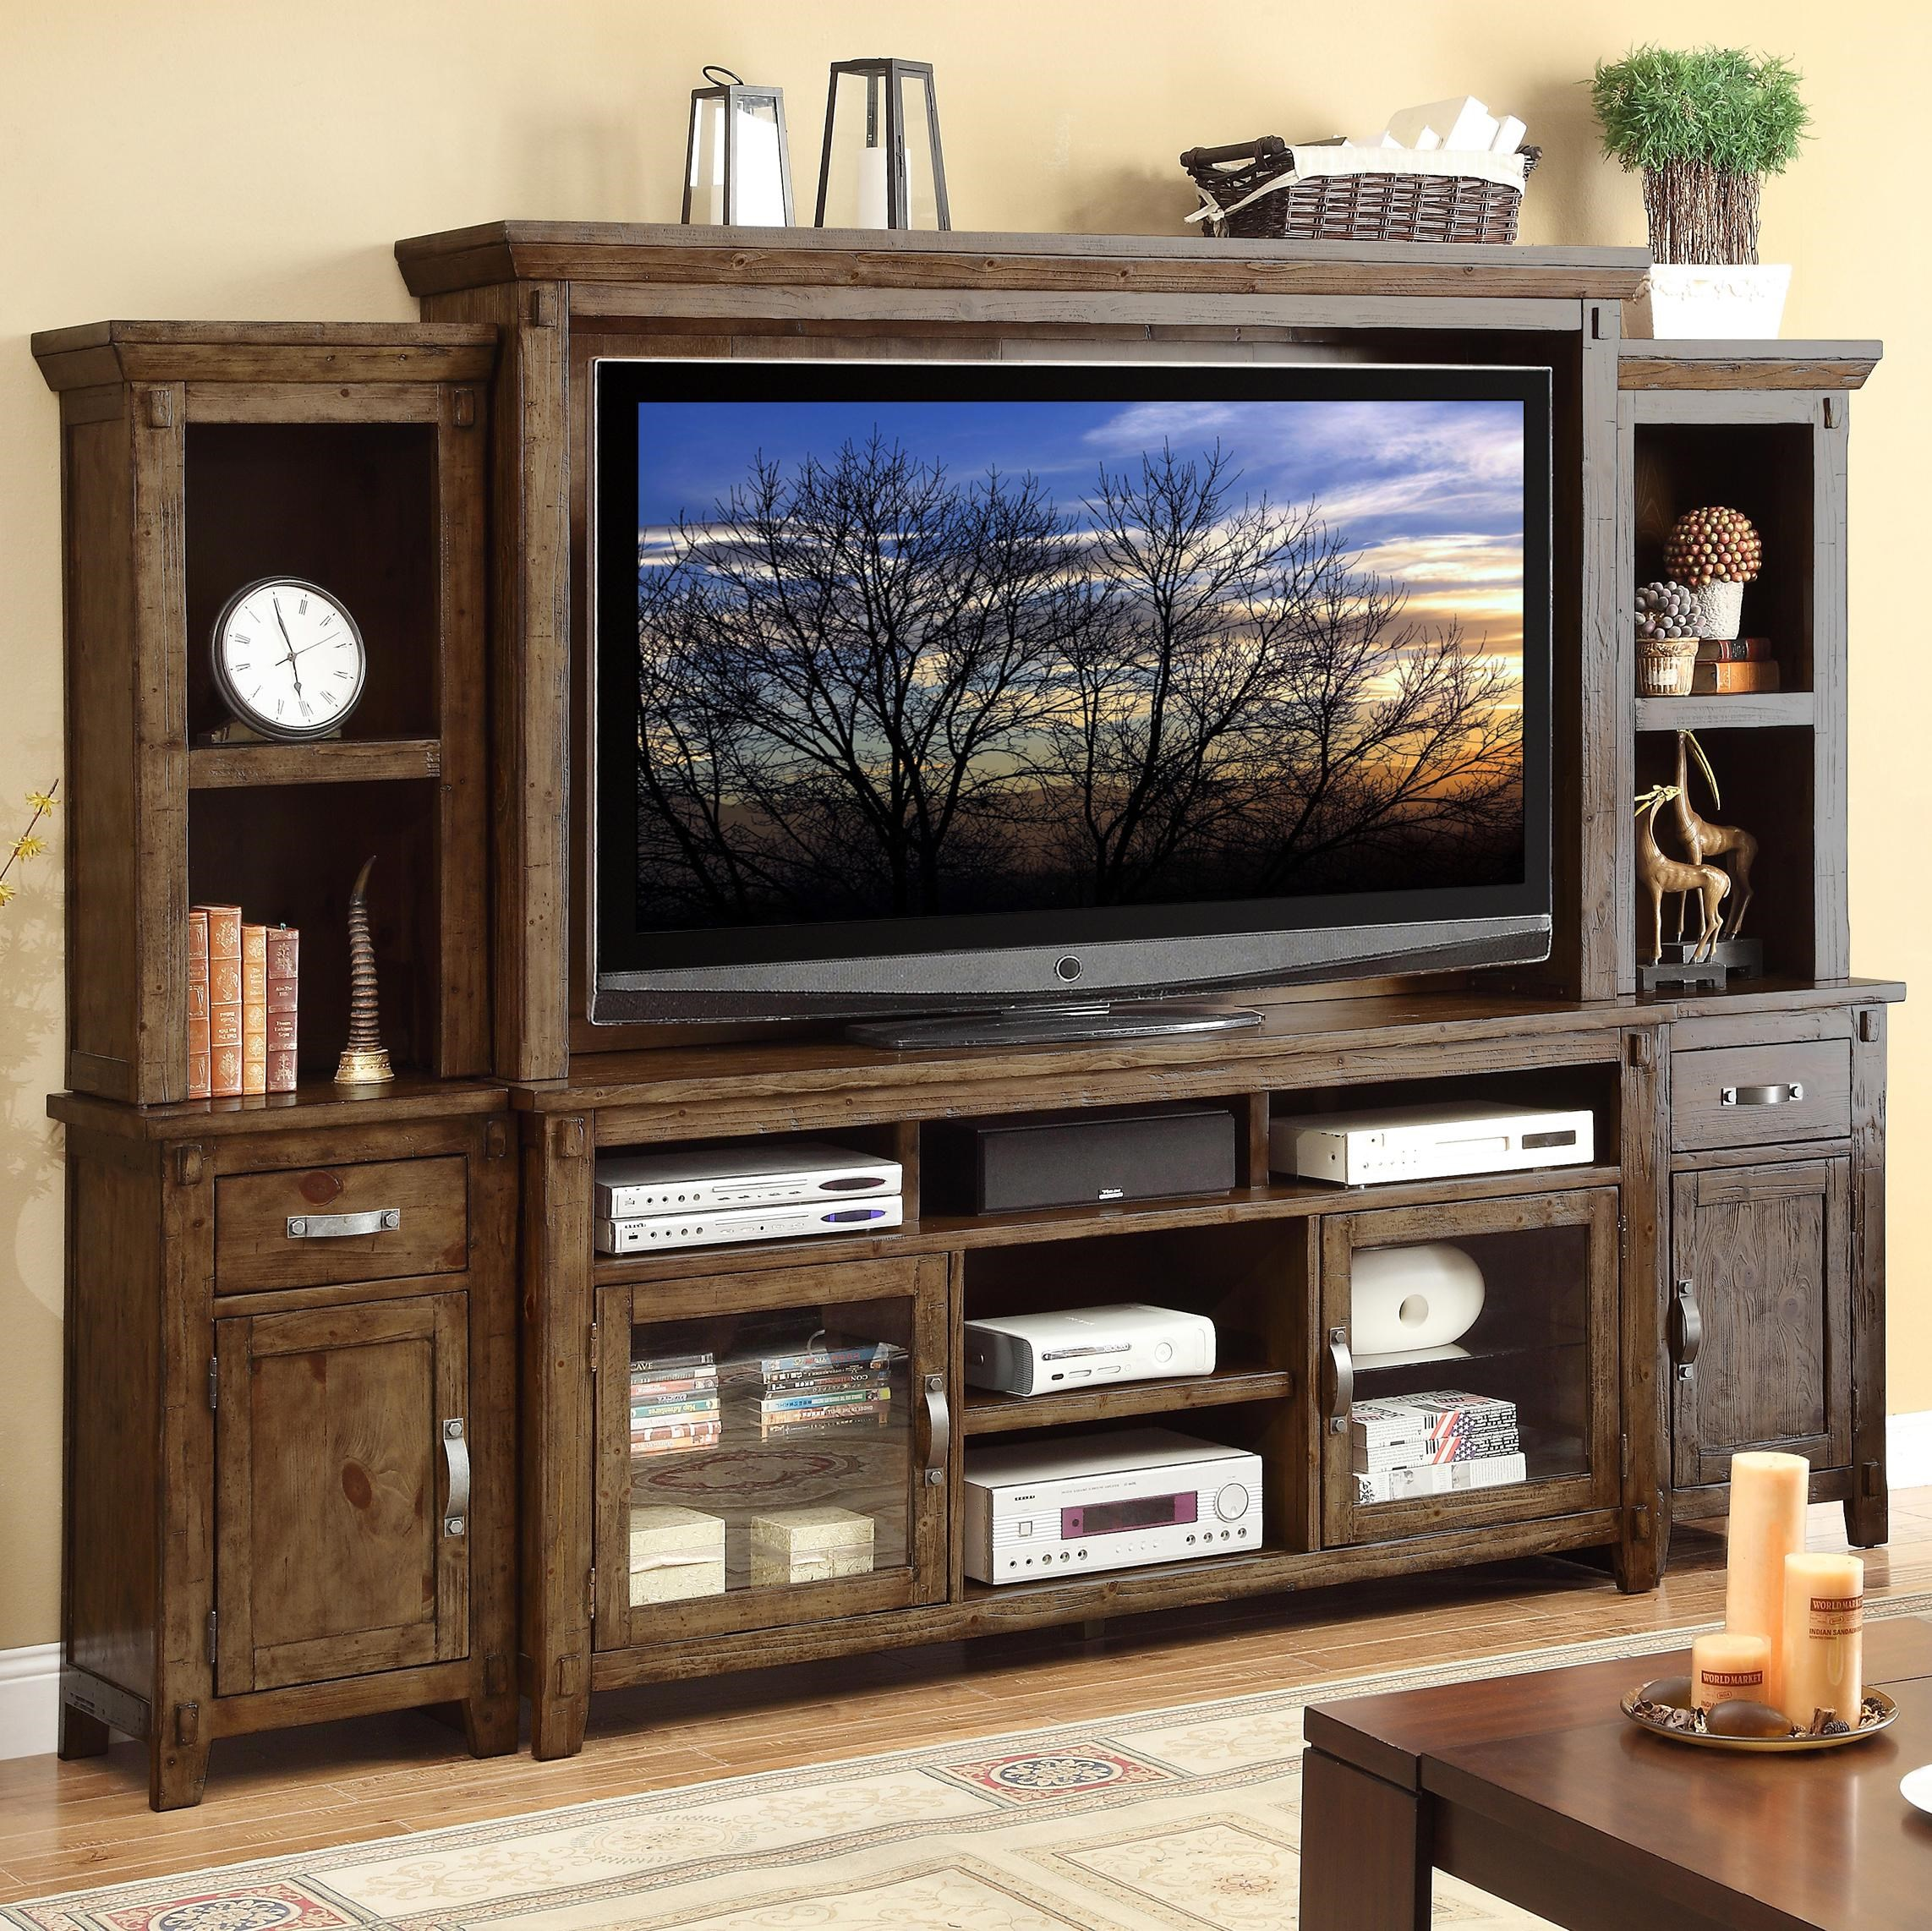 Large Wall Units For Living Room Restoration Large Rustic Casual Wall Unit With Two Piers By Legends Furniture At Dunk Bright Furniture